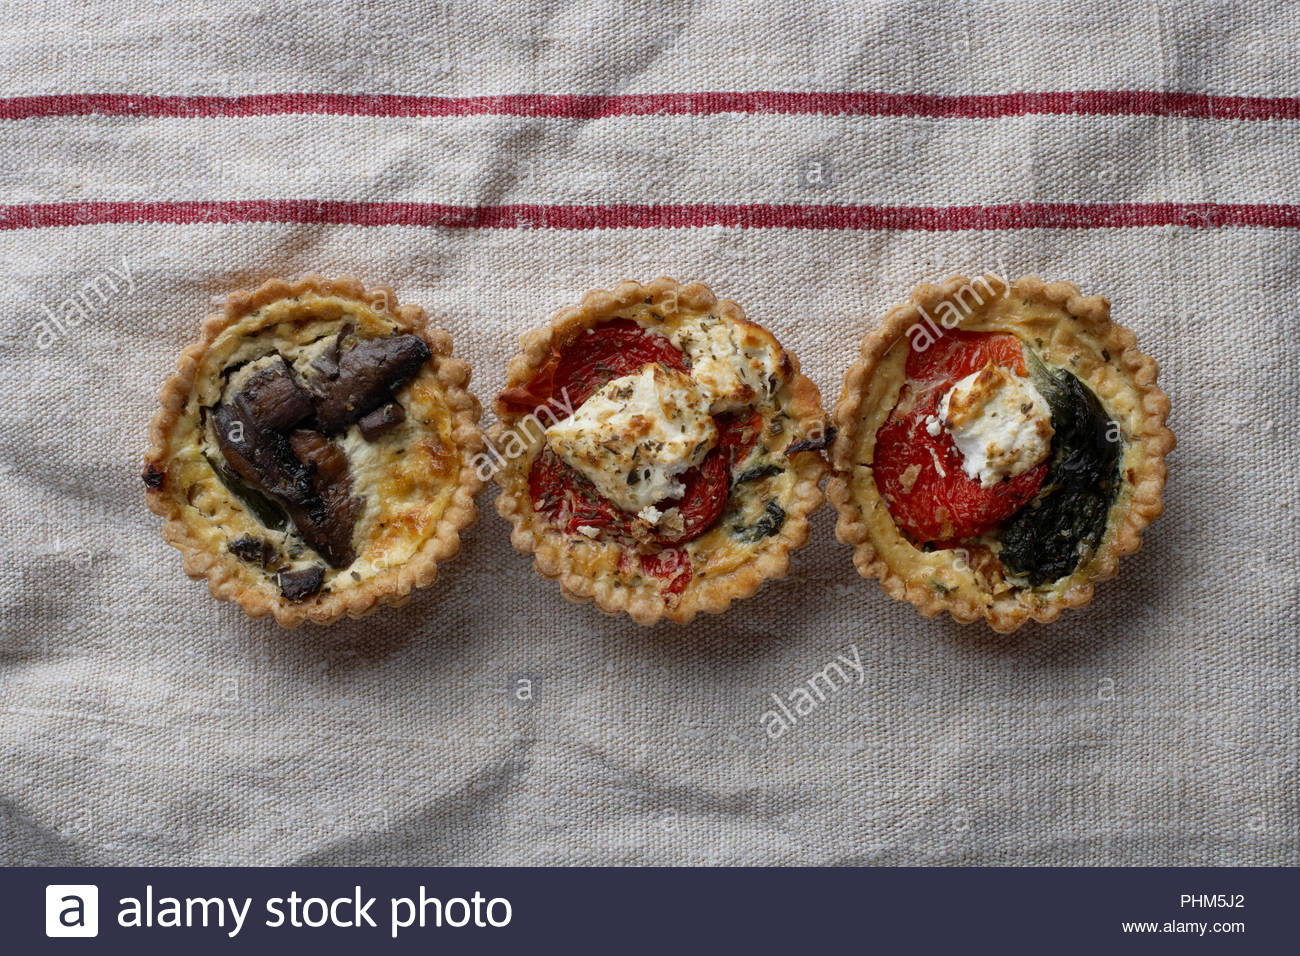 Row of quiches - Stock Image